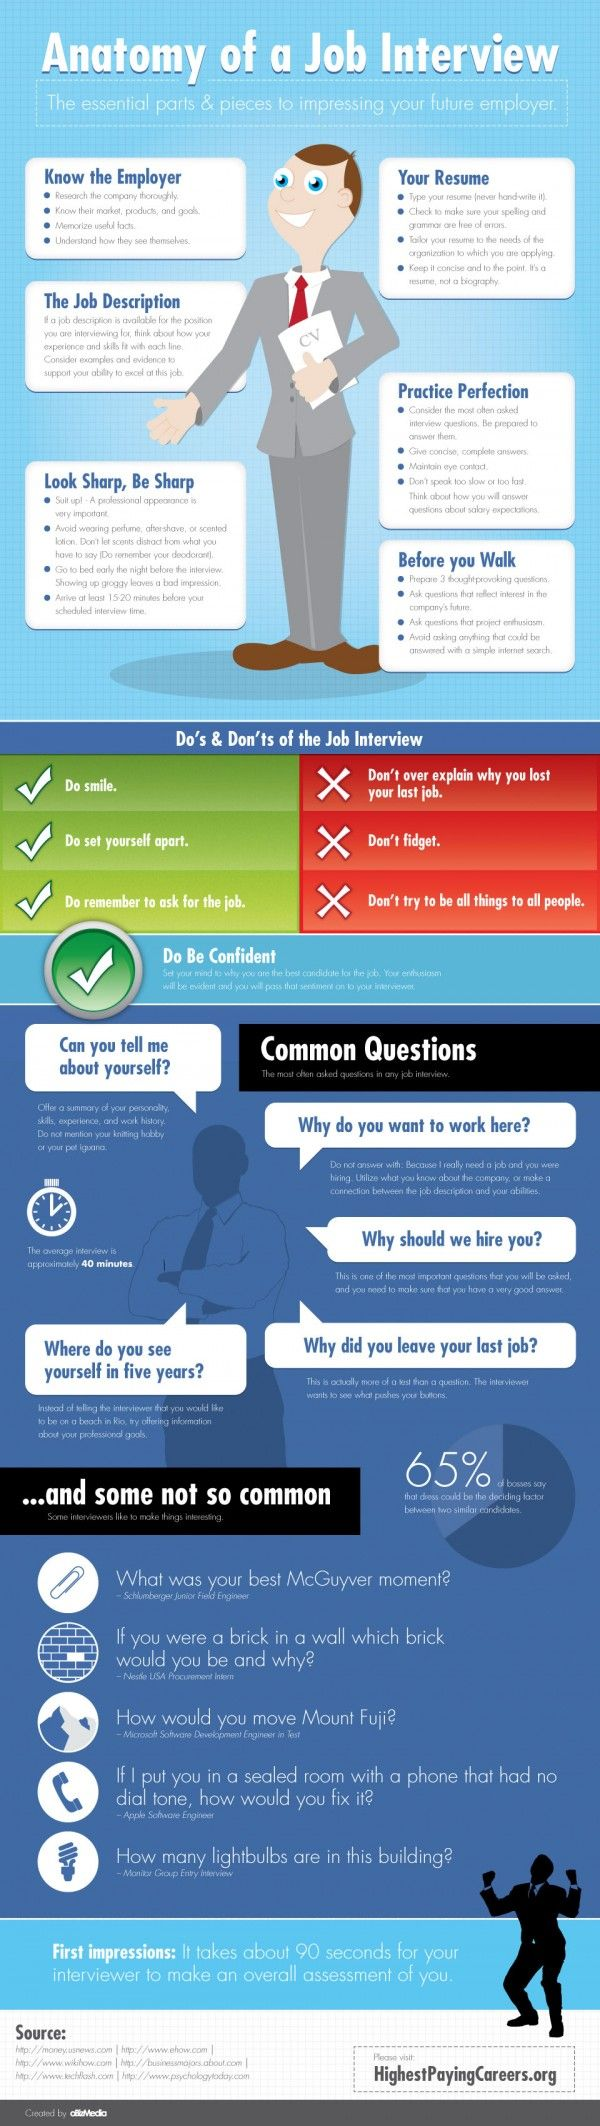 best images about interview tips tricks help them learn the needed mindful executive functioning skills planning time management and organization for